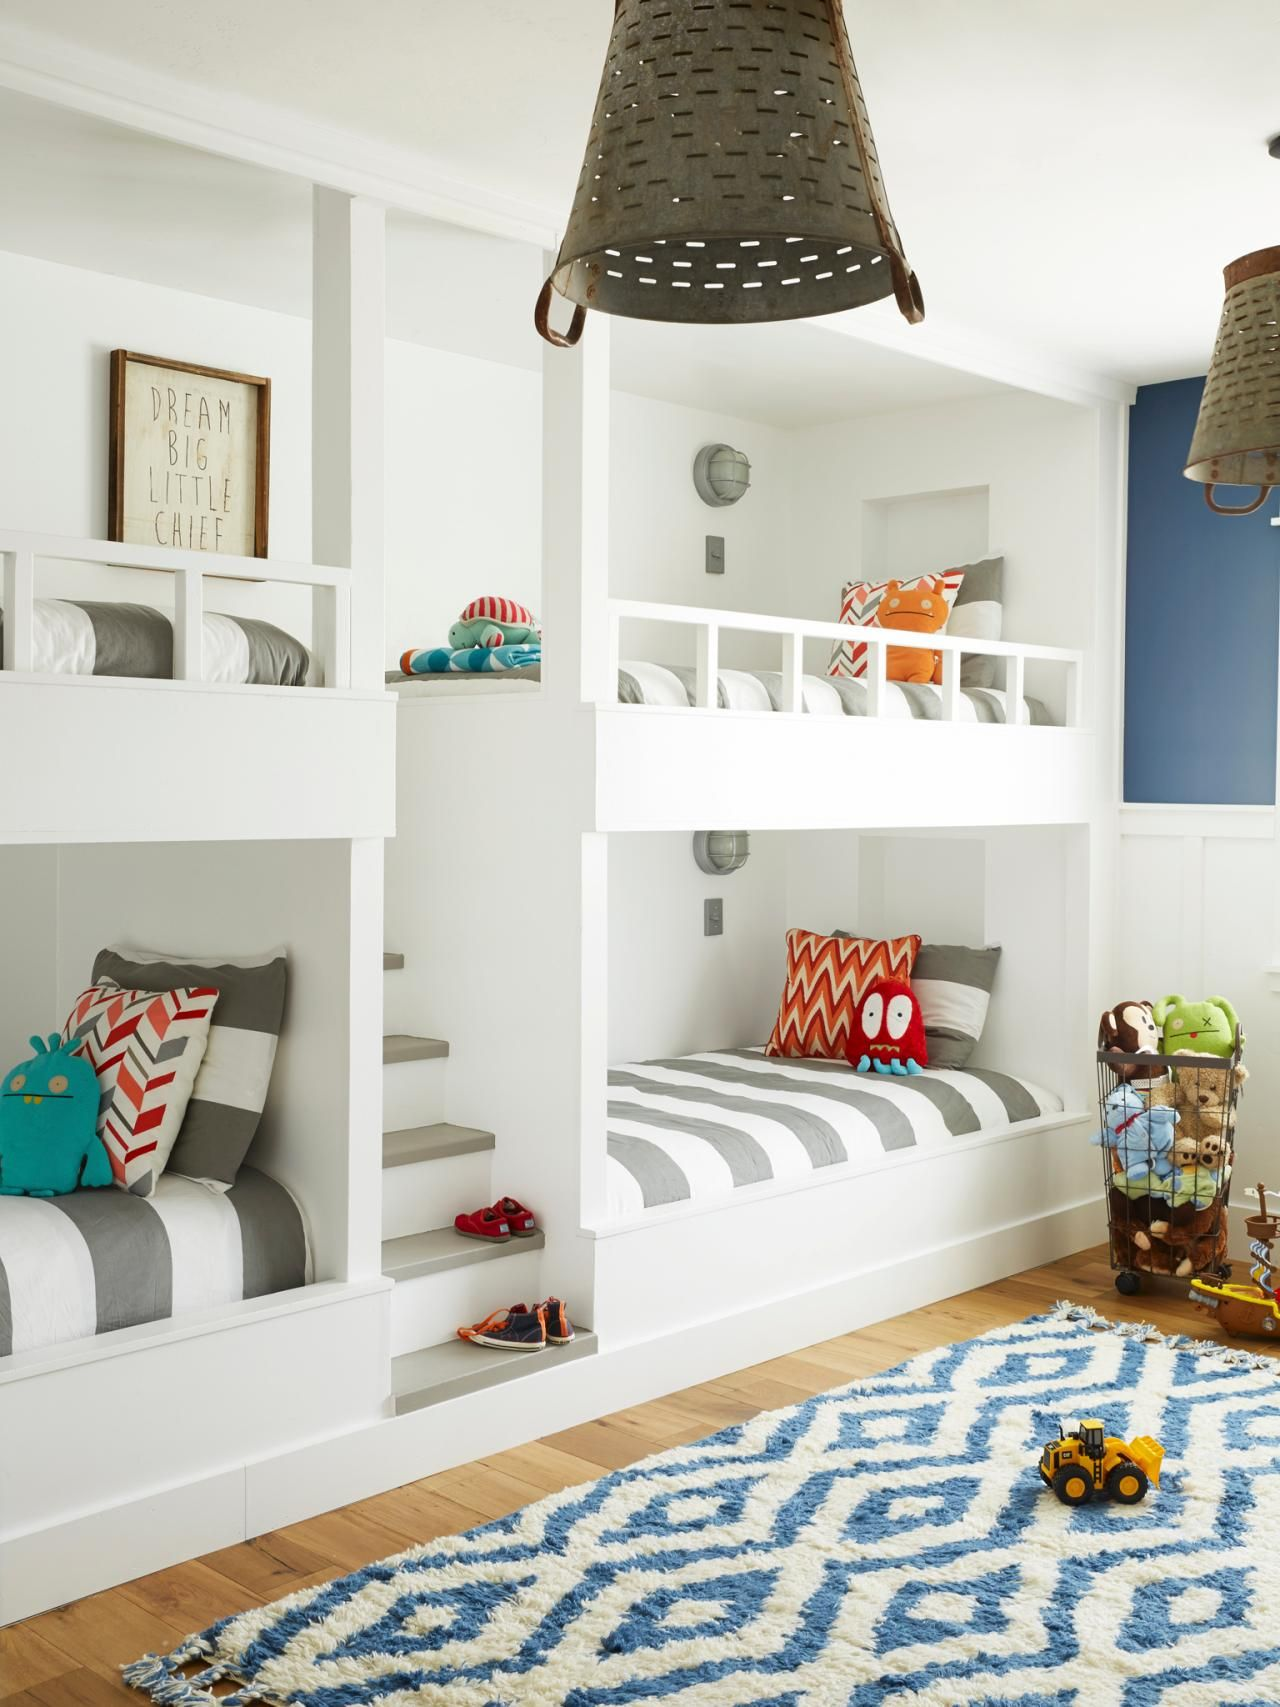 Bunk Room Bunk Room Design Coastal Bunk Room BunkRoom